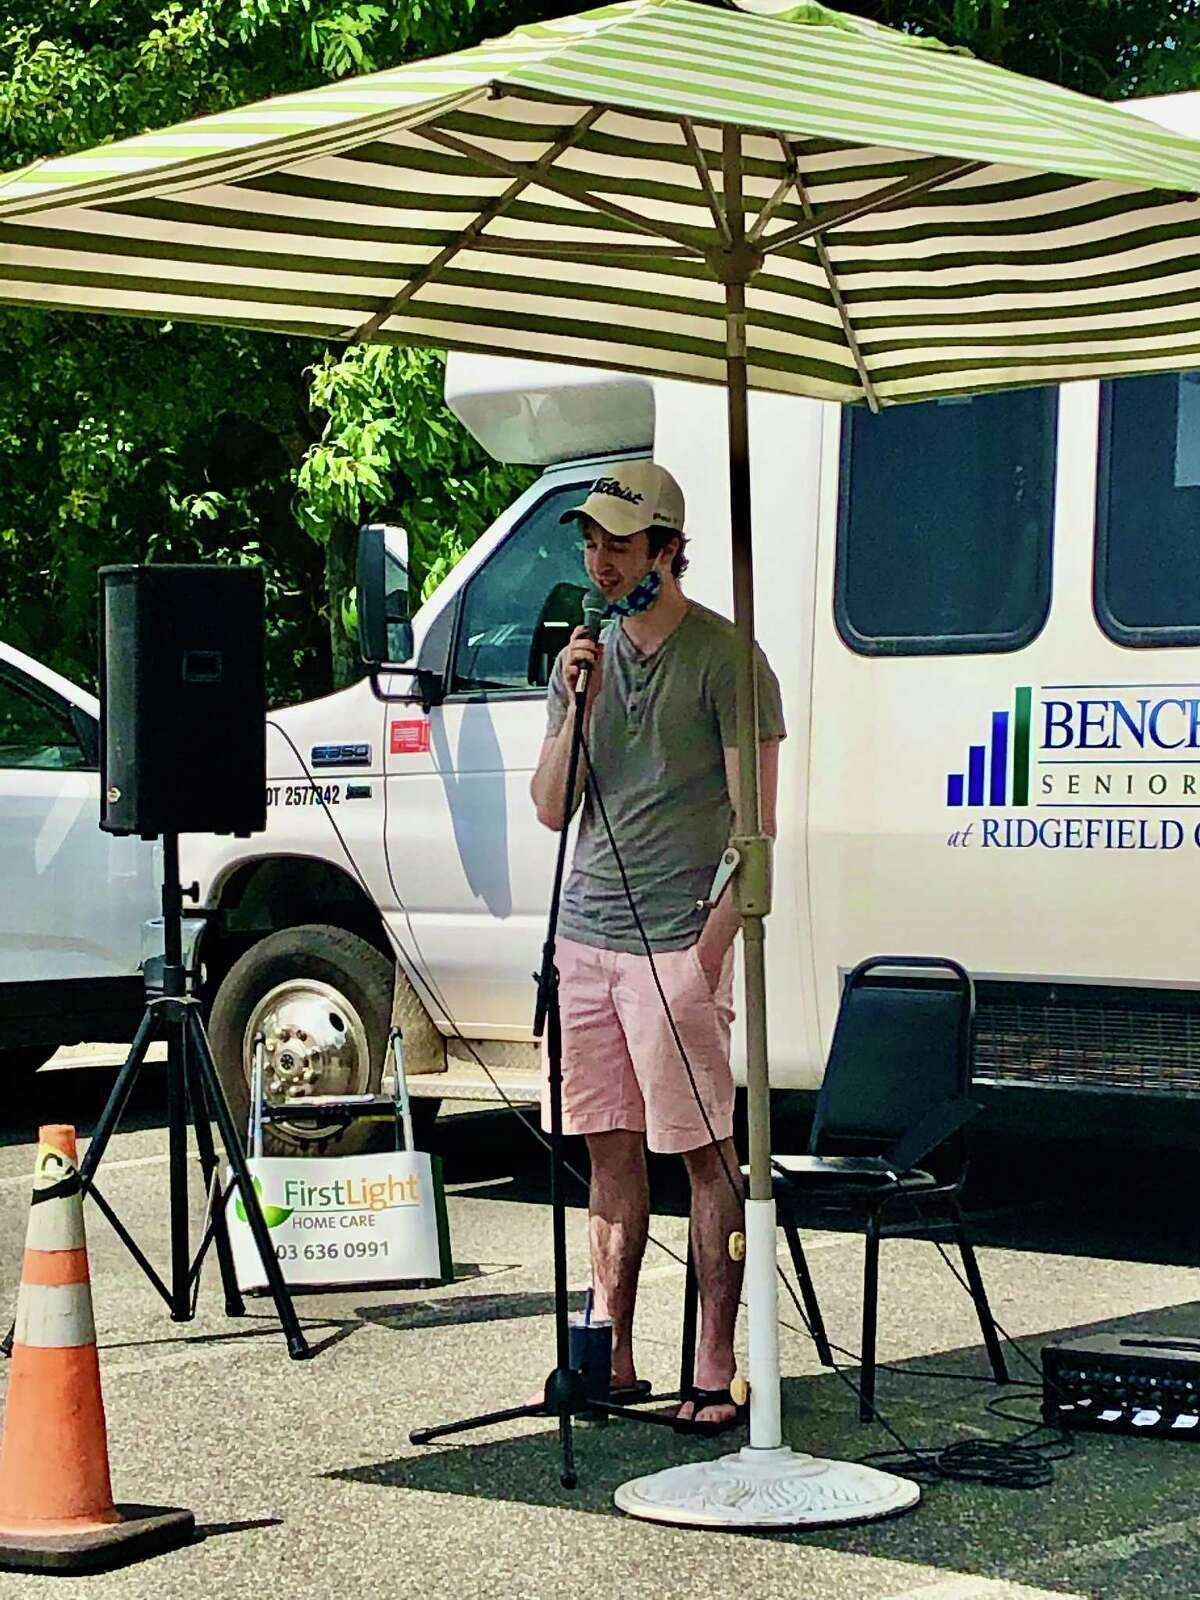 Micheal Shofi performs at Benchmark Senior Living at Ridgefield Crossings during the Windows Serenade event for Make Music Ridgefield on June 21.